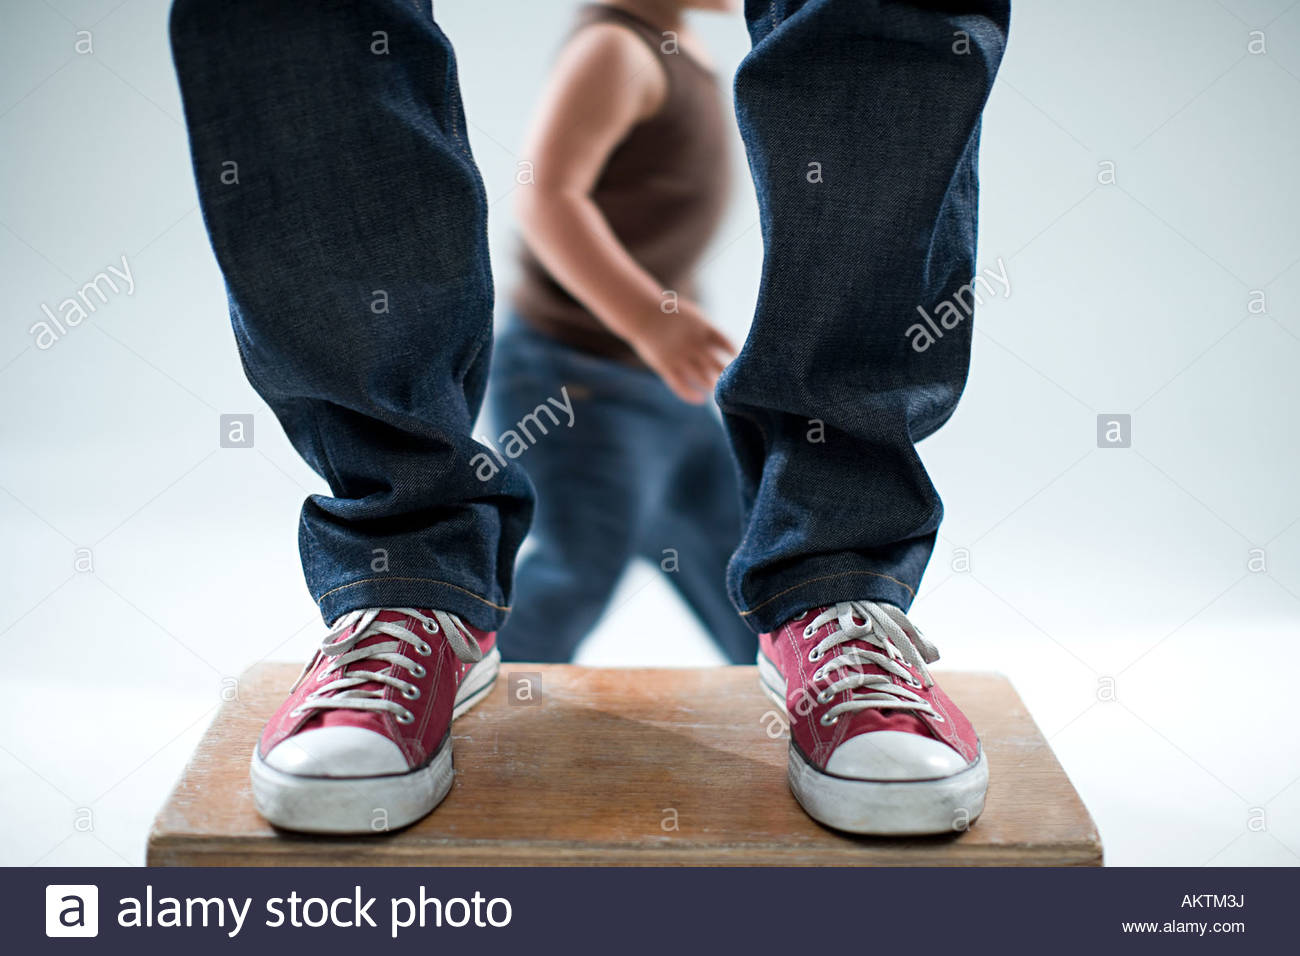 Child and legs of adult - Stock Image